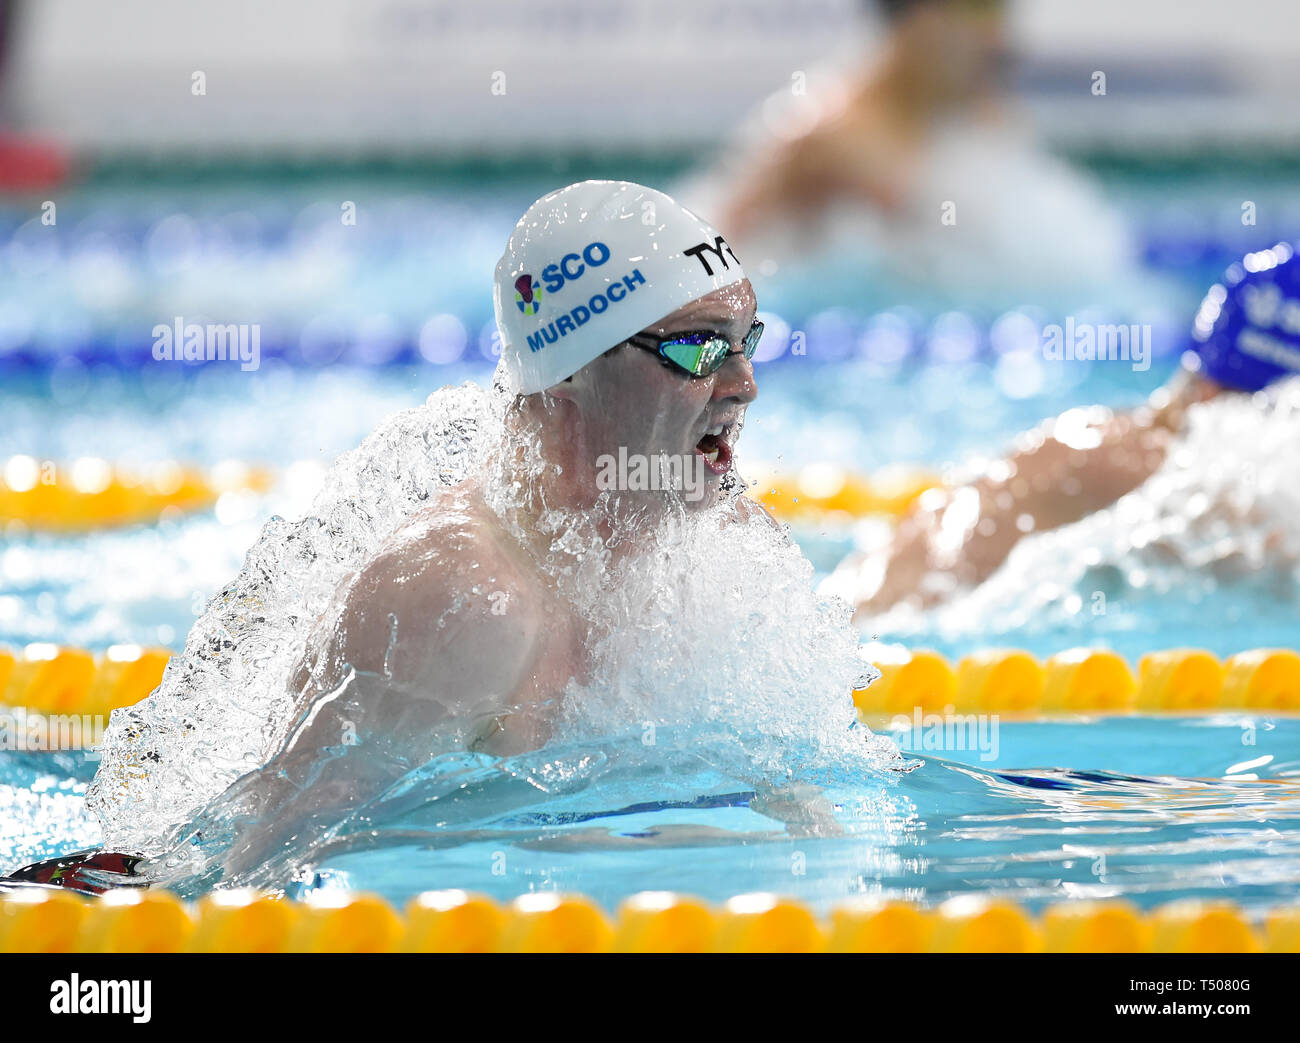 Ross Murdoch competing in the Men's 200m Breaststroke final during day four of the 2019 British Swimming Championships at Tollcross International Swimming Centre, Glasgow. Stock Photo